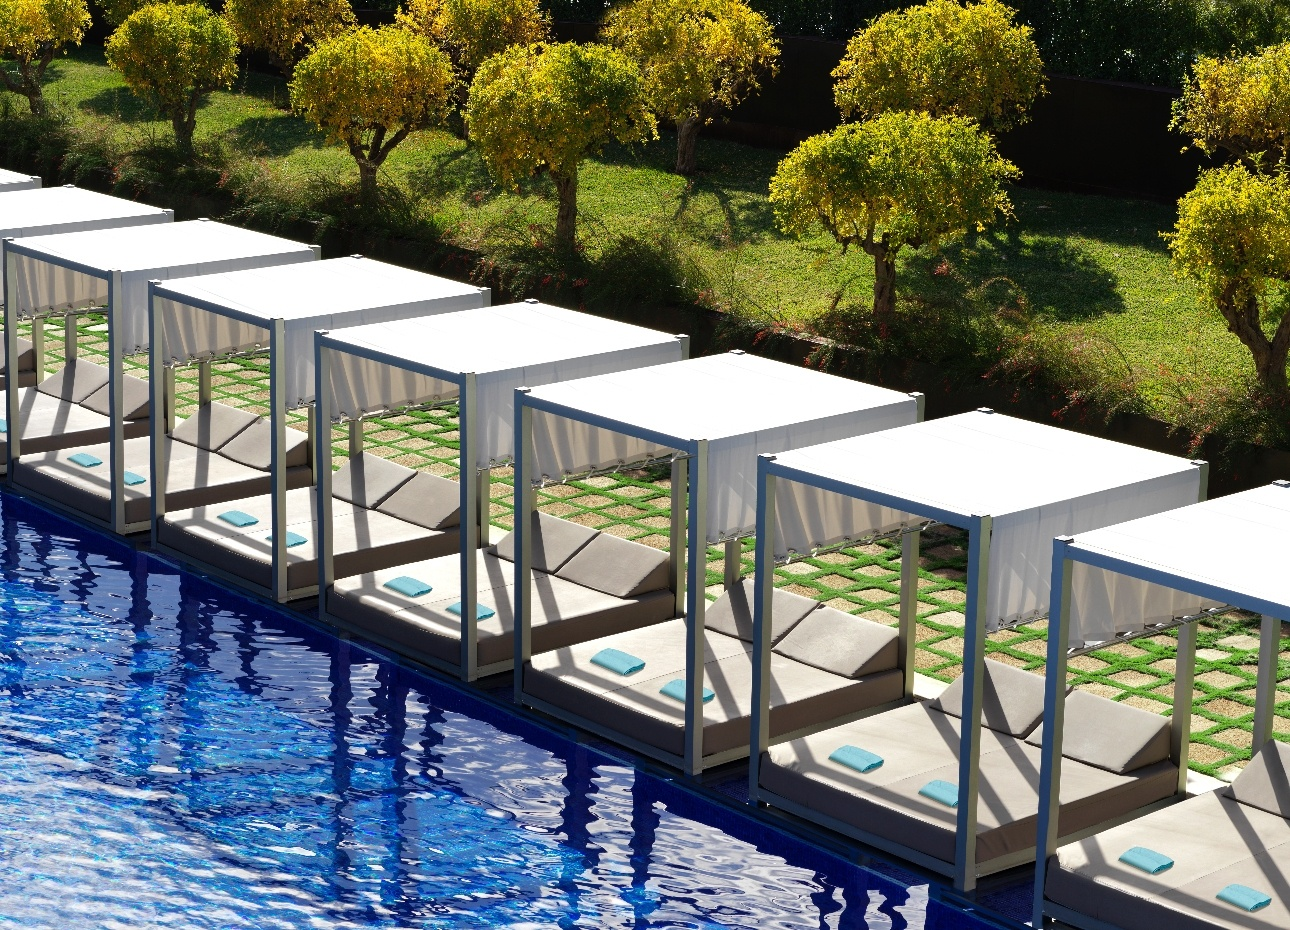 Poolside daybeds